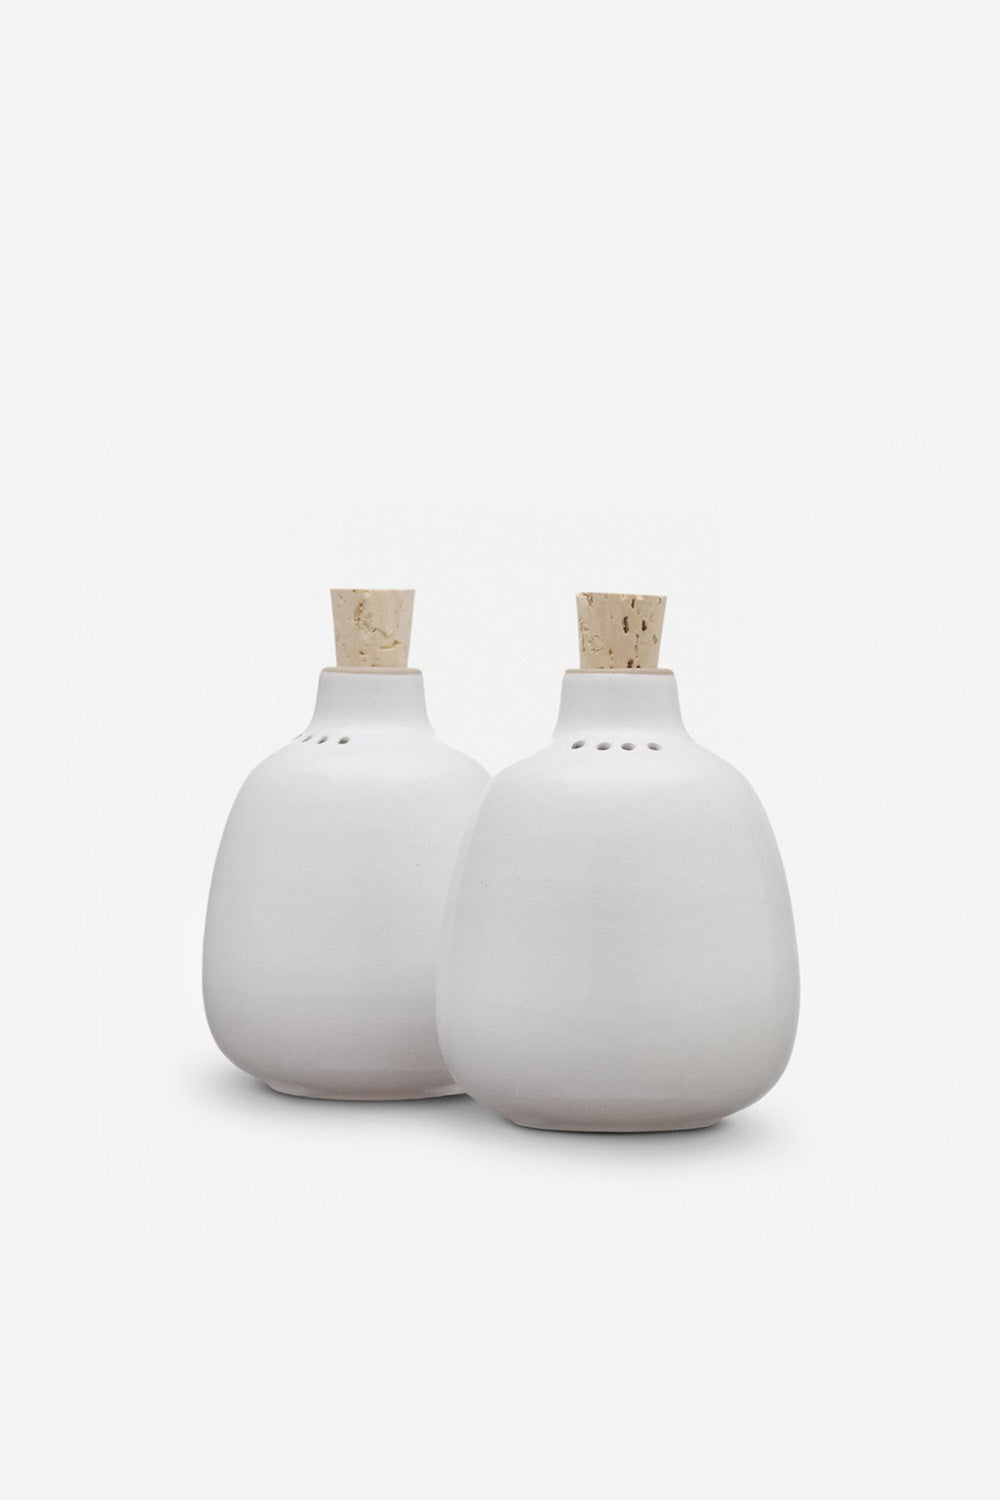 Alabama Chanin Heath Ceramics Salt and Pepper Shaker Set in Opaque White